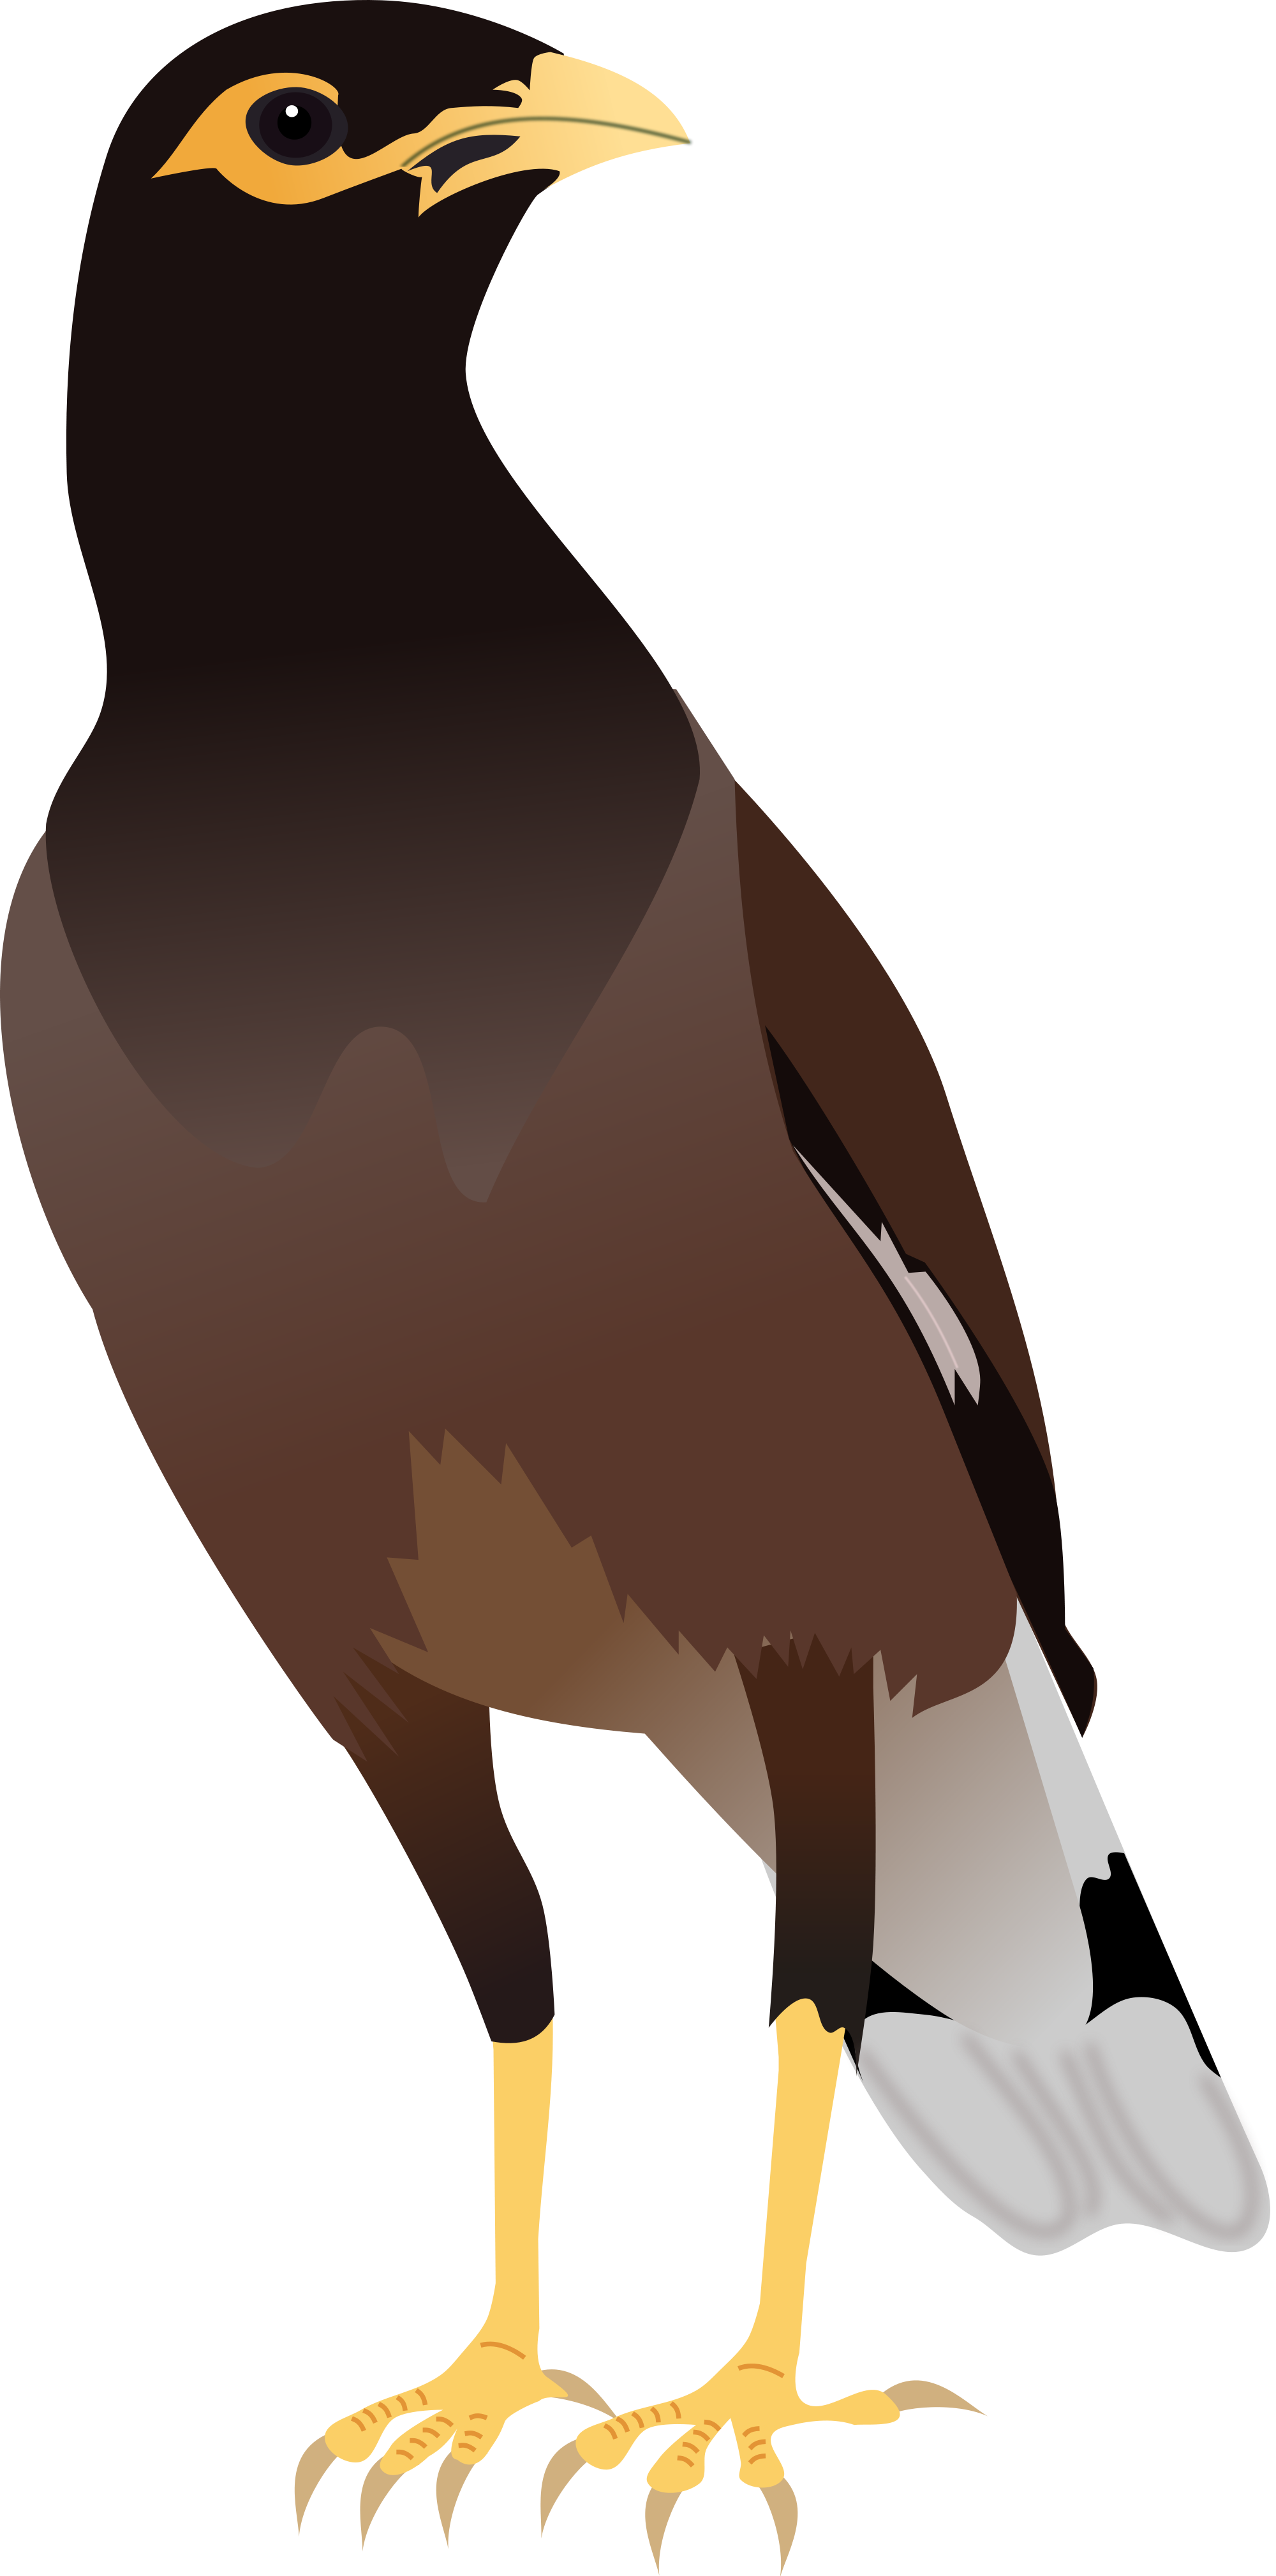 File:Common Myna.svg.